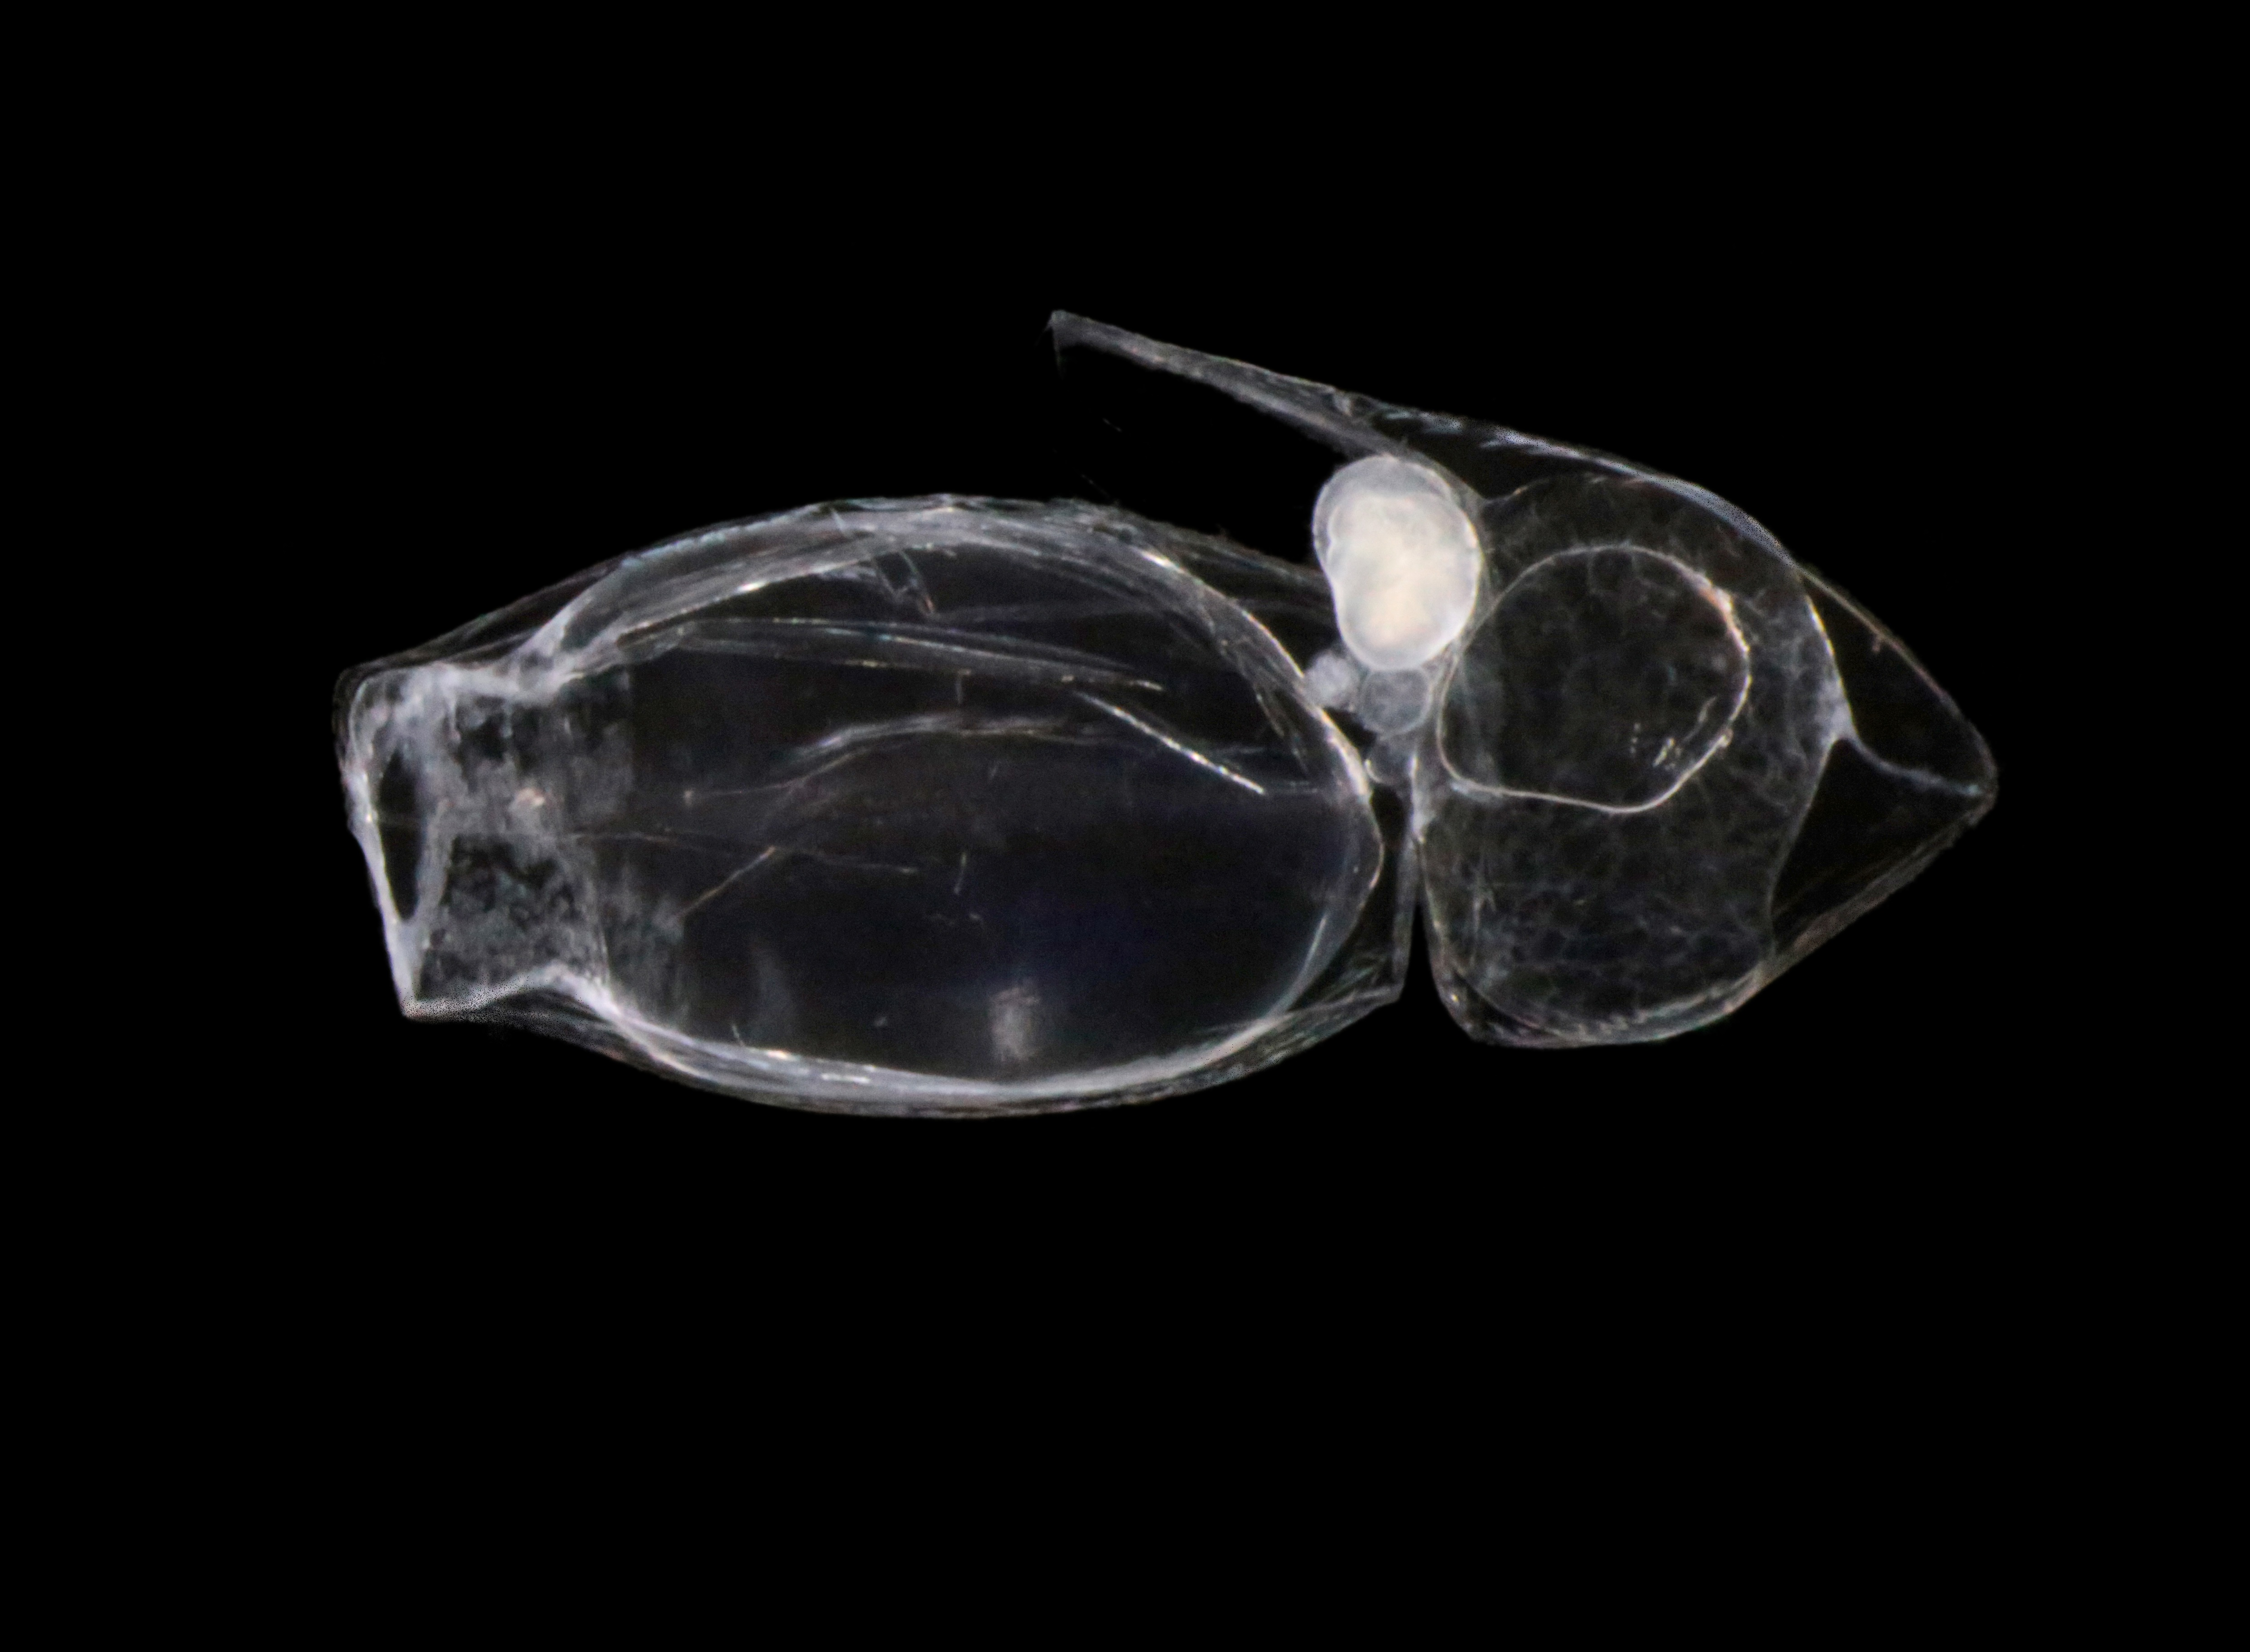 Hydrozoer: Dimophyes arctica.